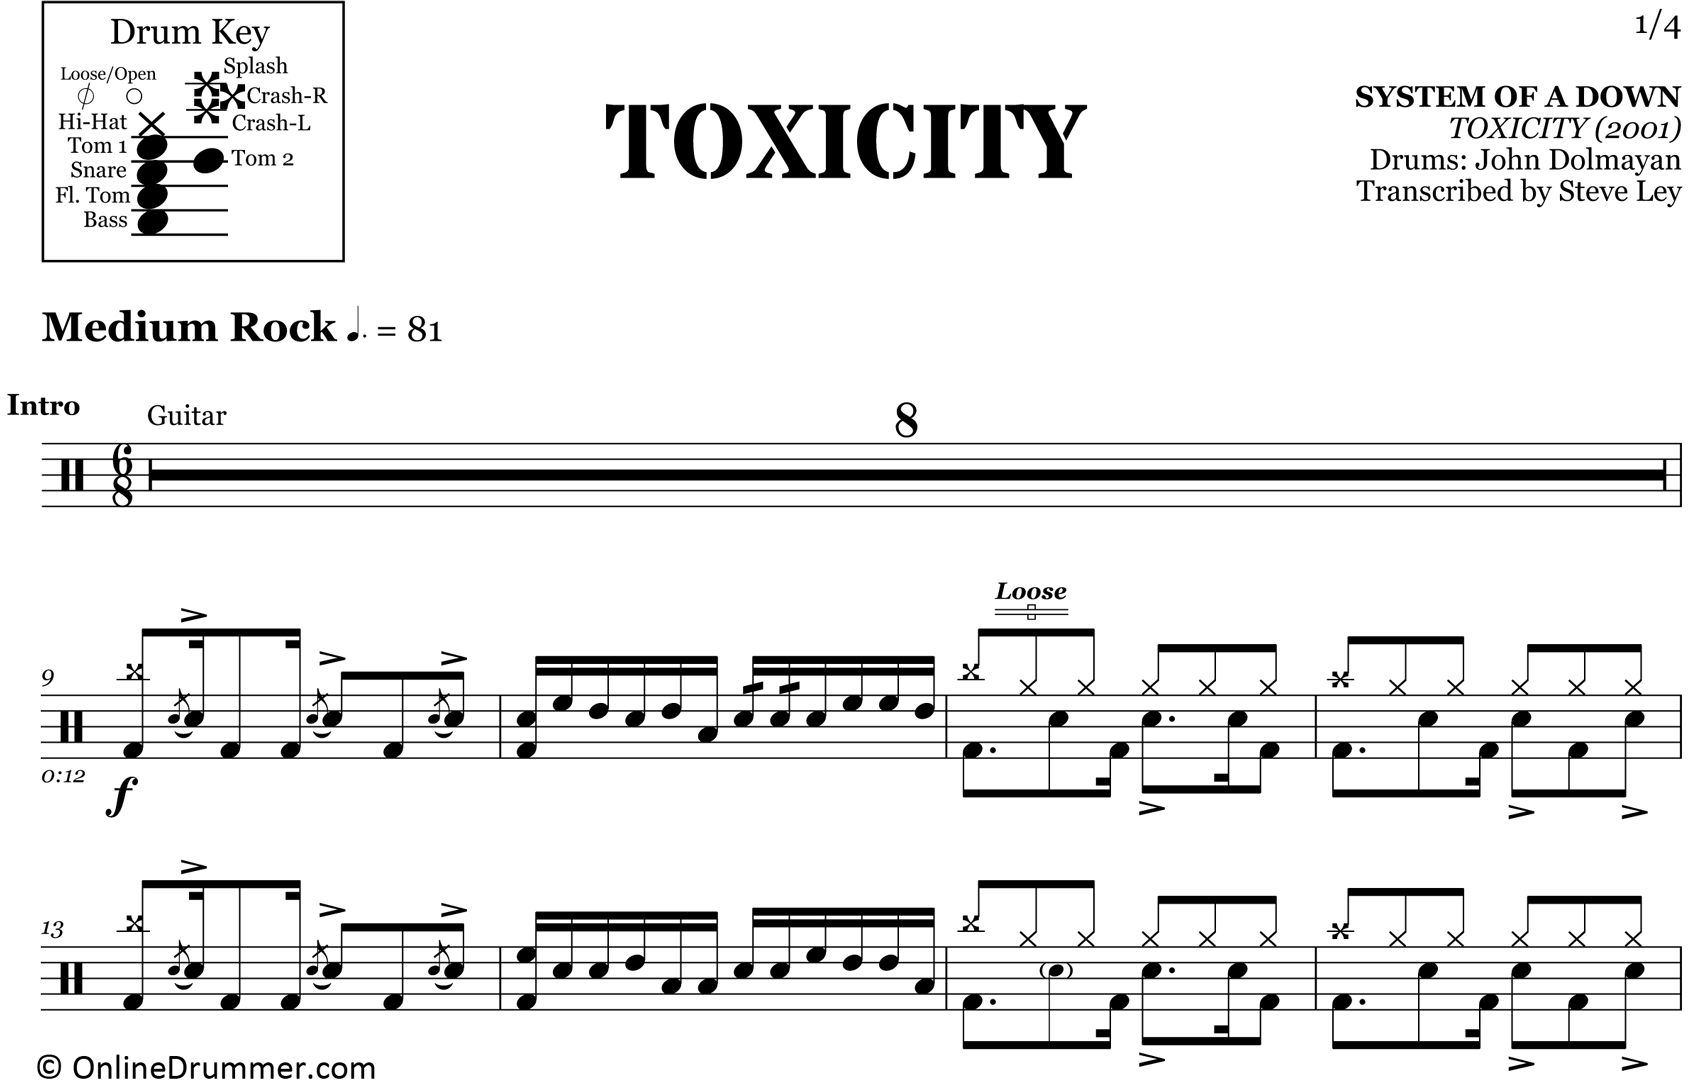 Toxicity - System of a Down - Drum Sheet Music